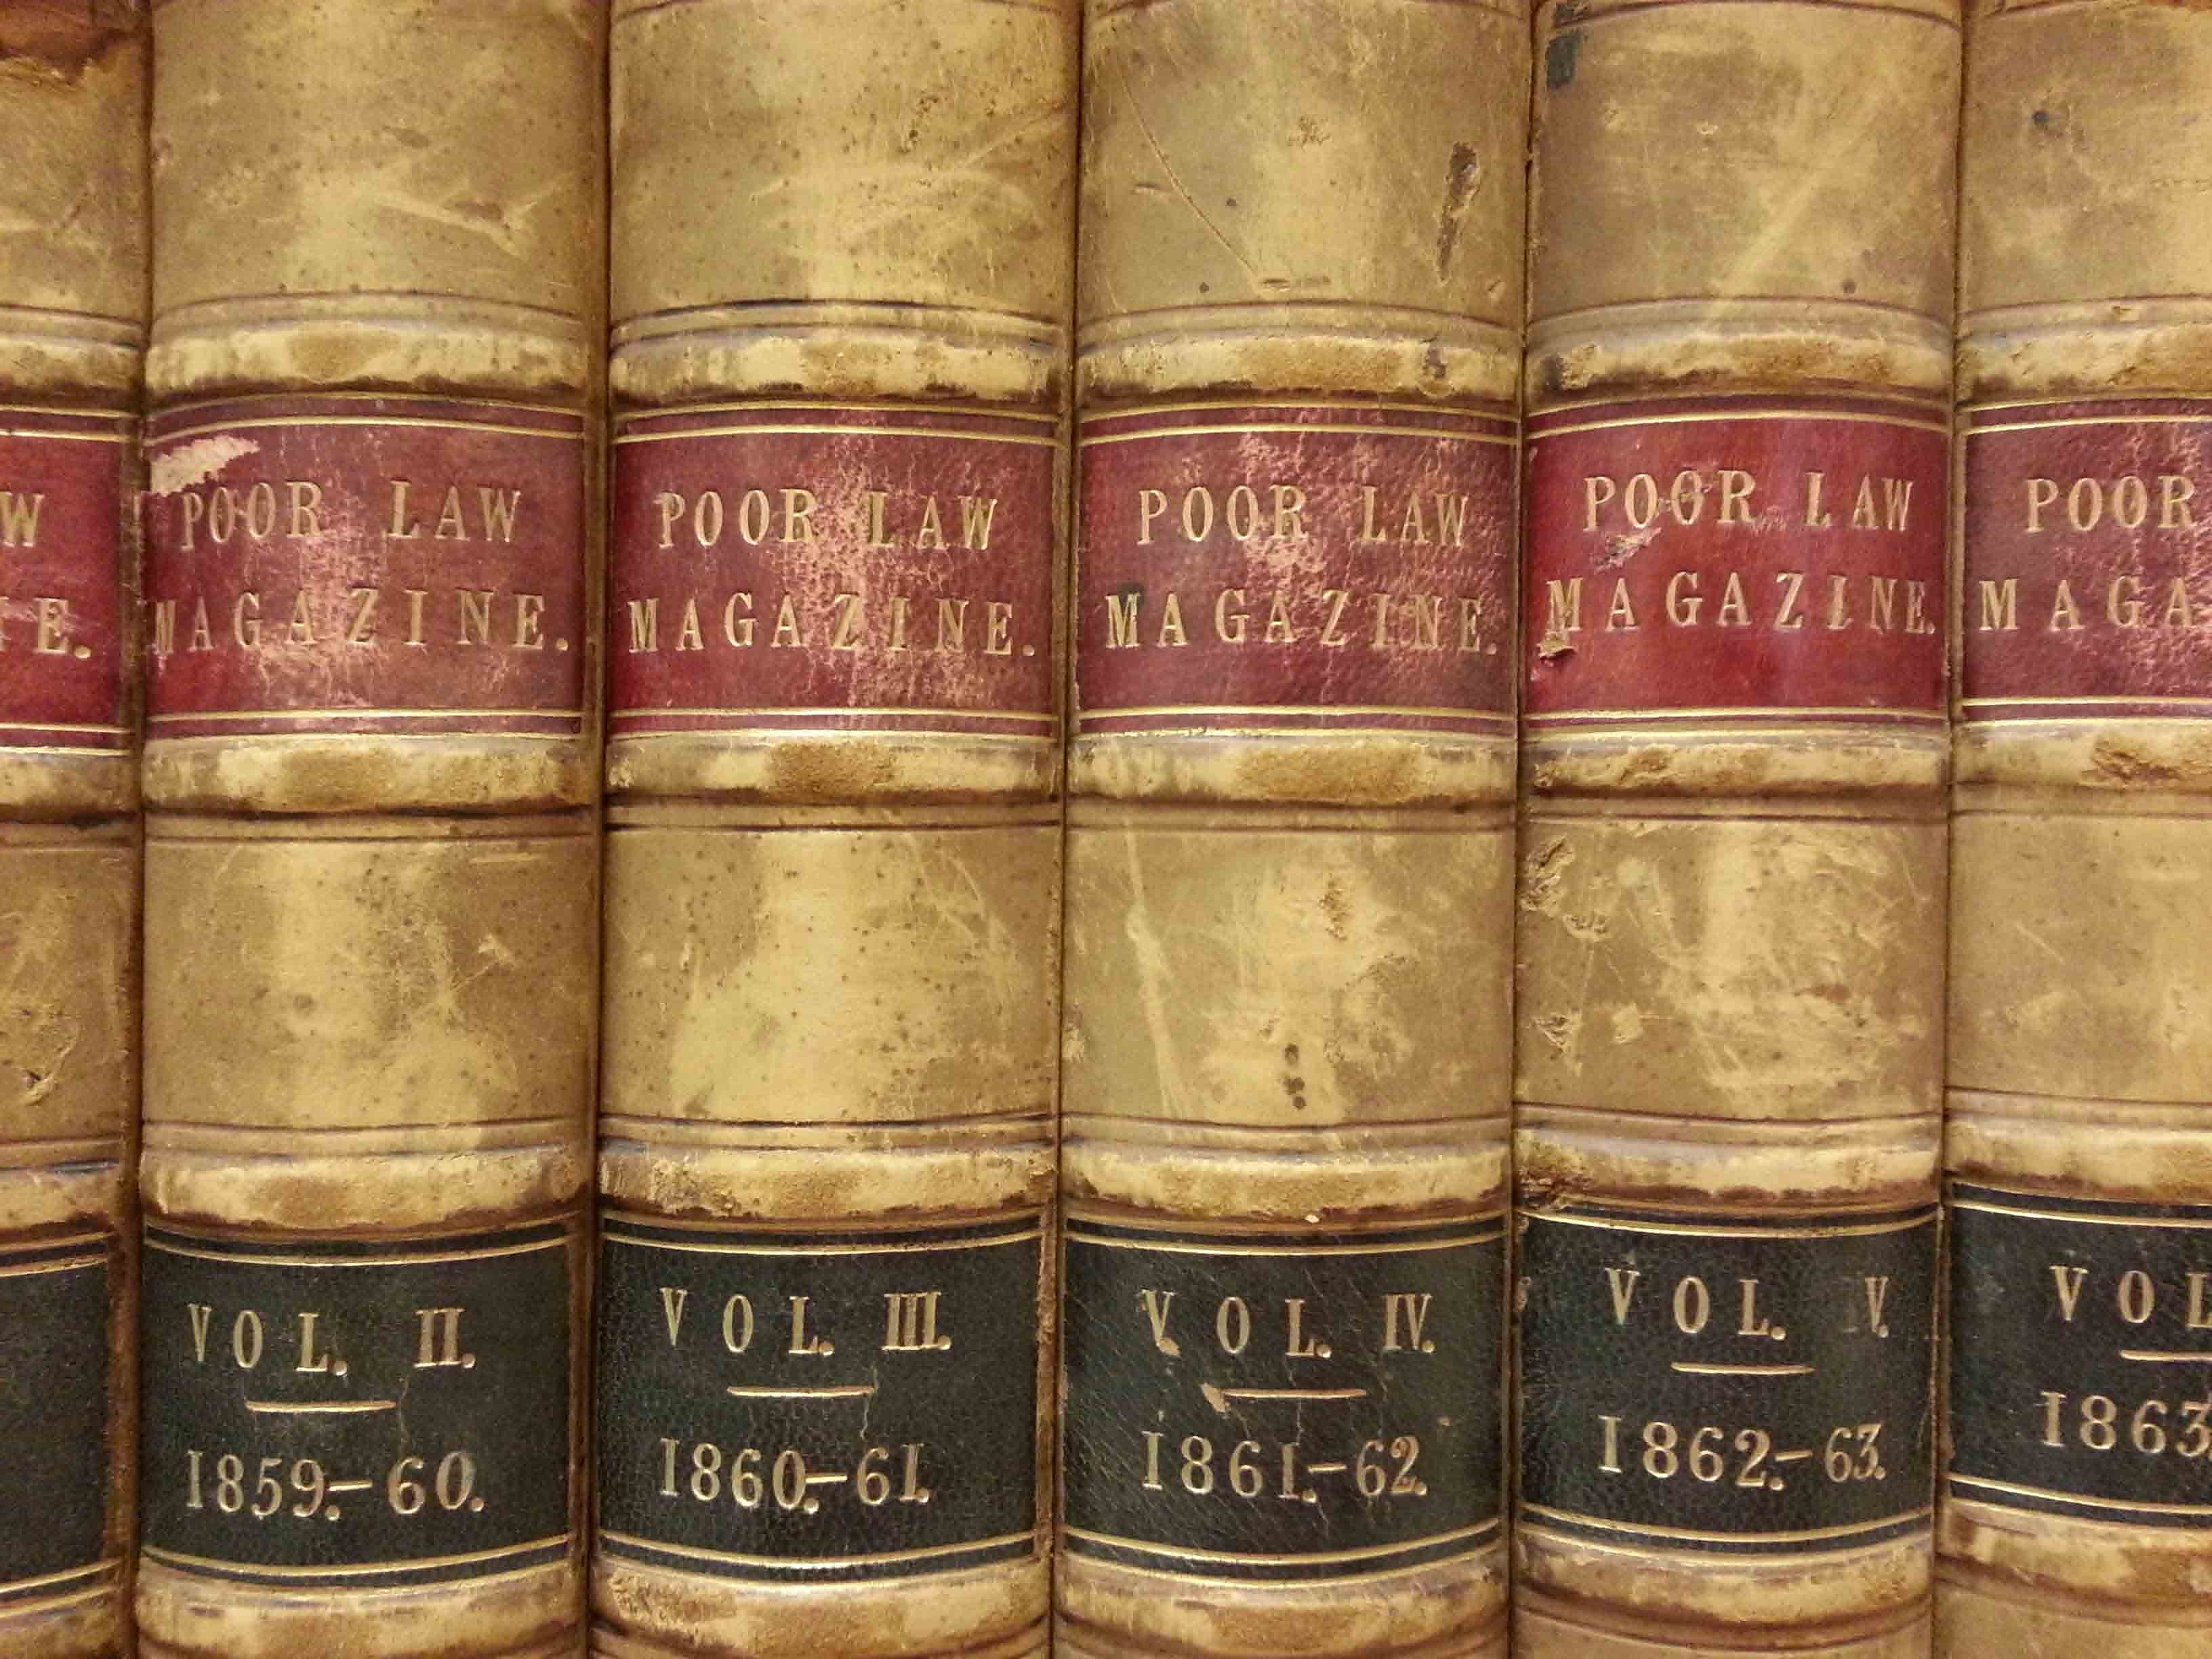 Poorlaw magazine volumes